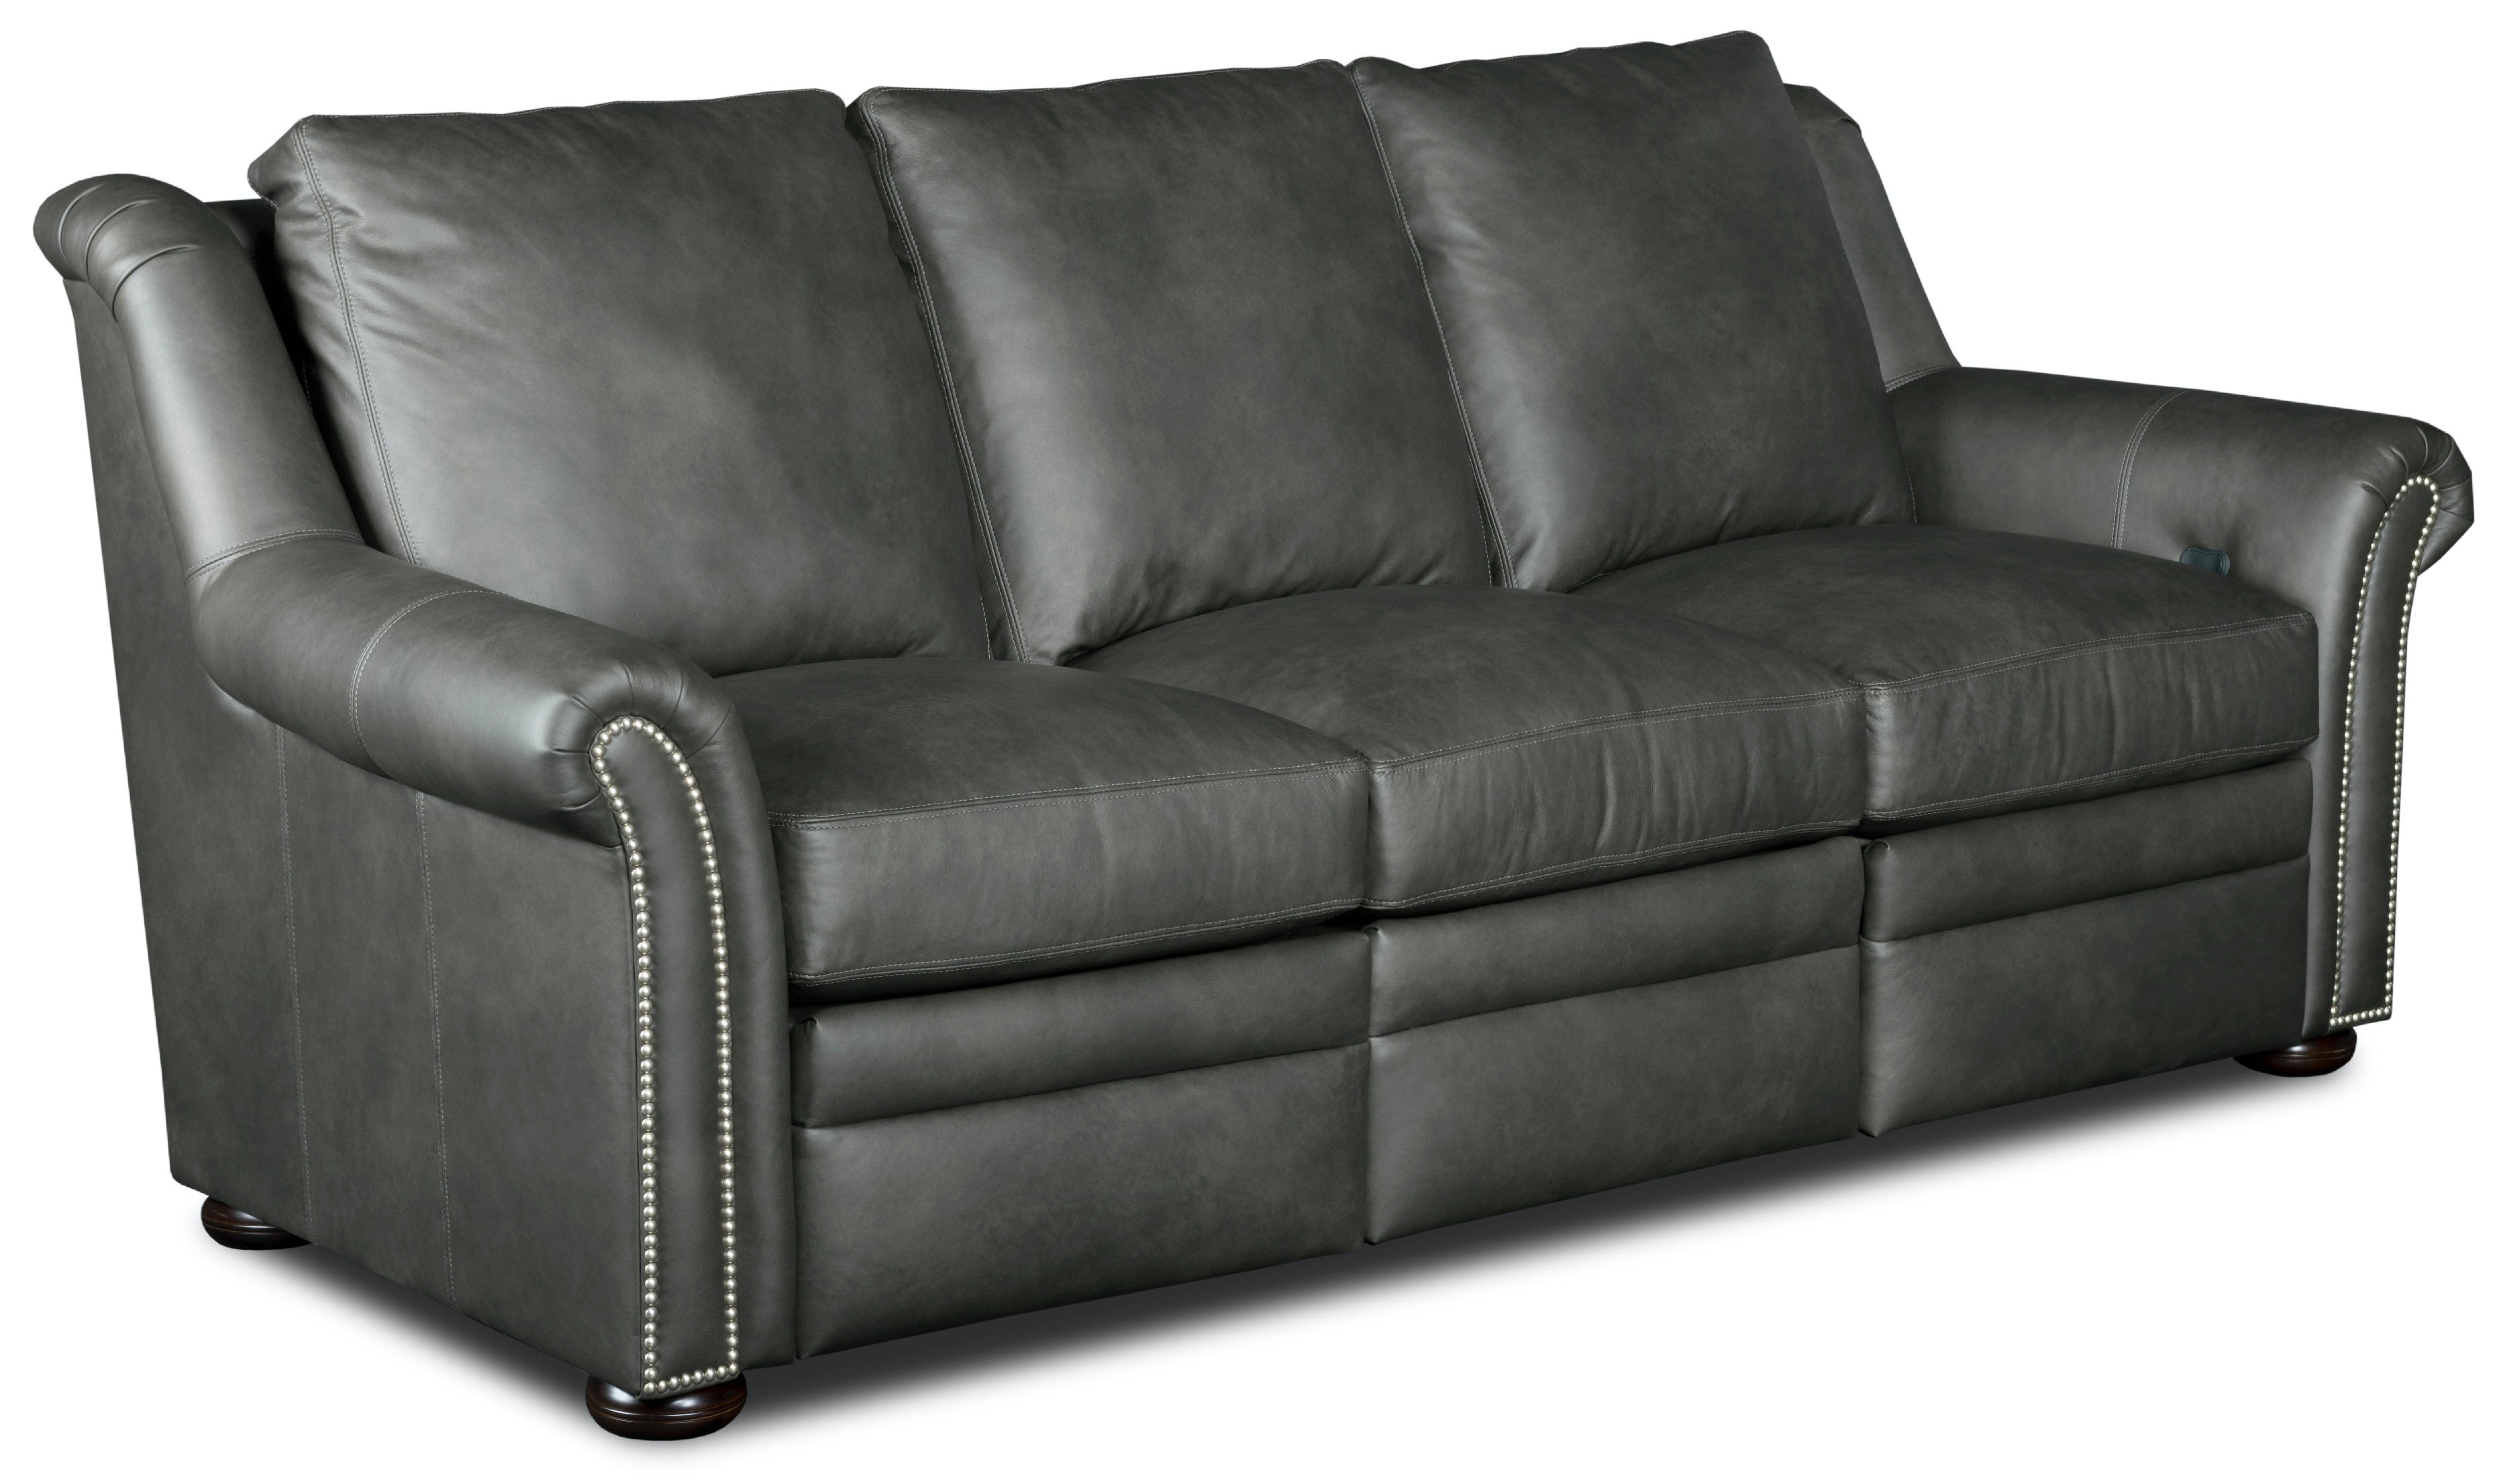 Genial Bradington Young Newman Sofa   Full Recline At Both Arms 916 90